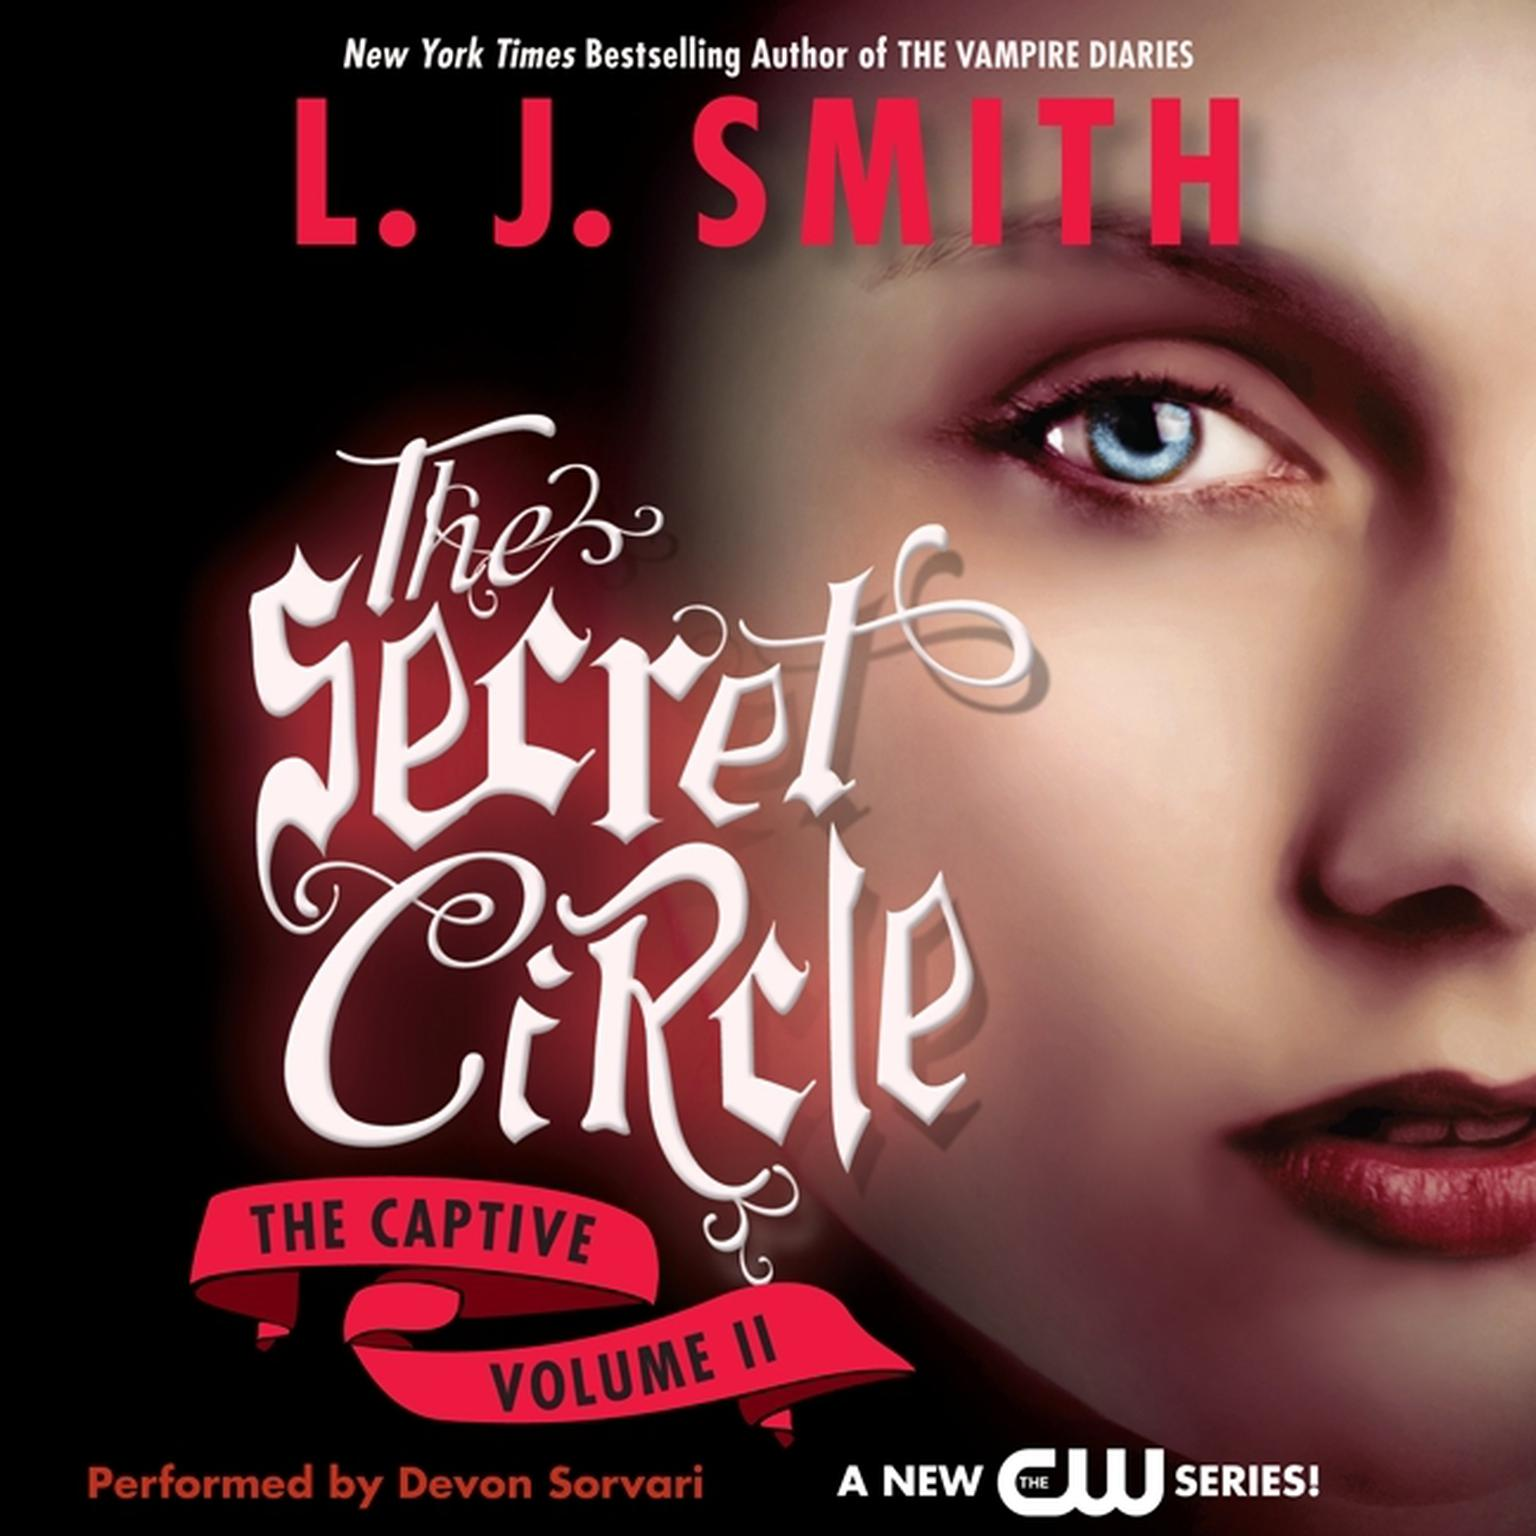 Printable The Captive: The Secret Circle Vol. II Audiobook Cover Art